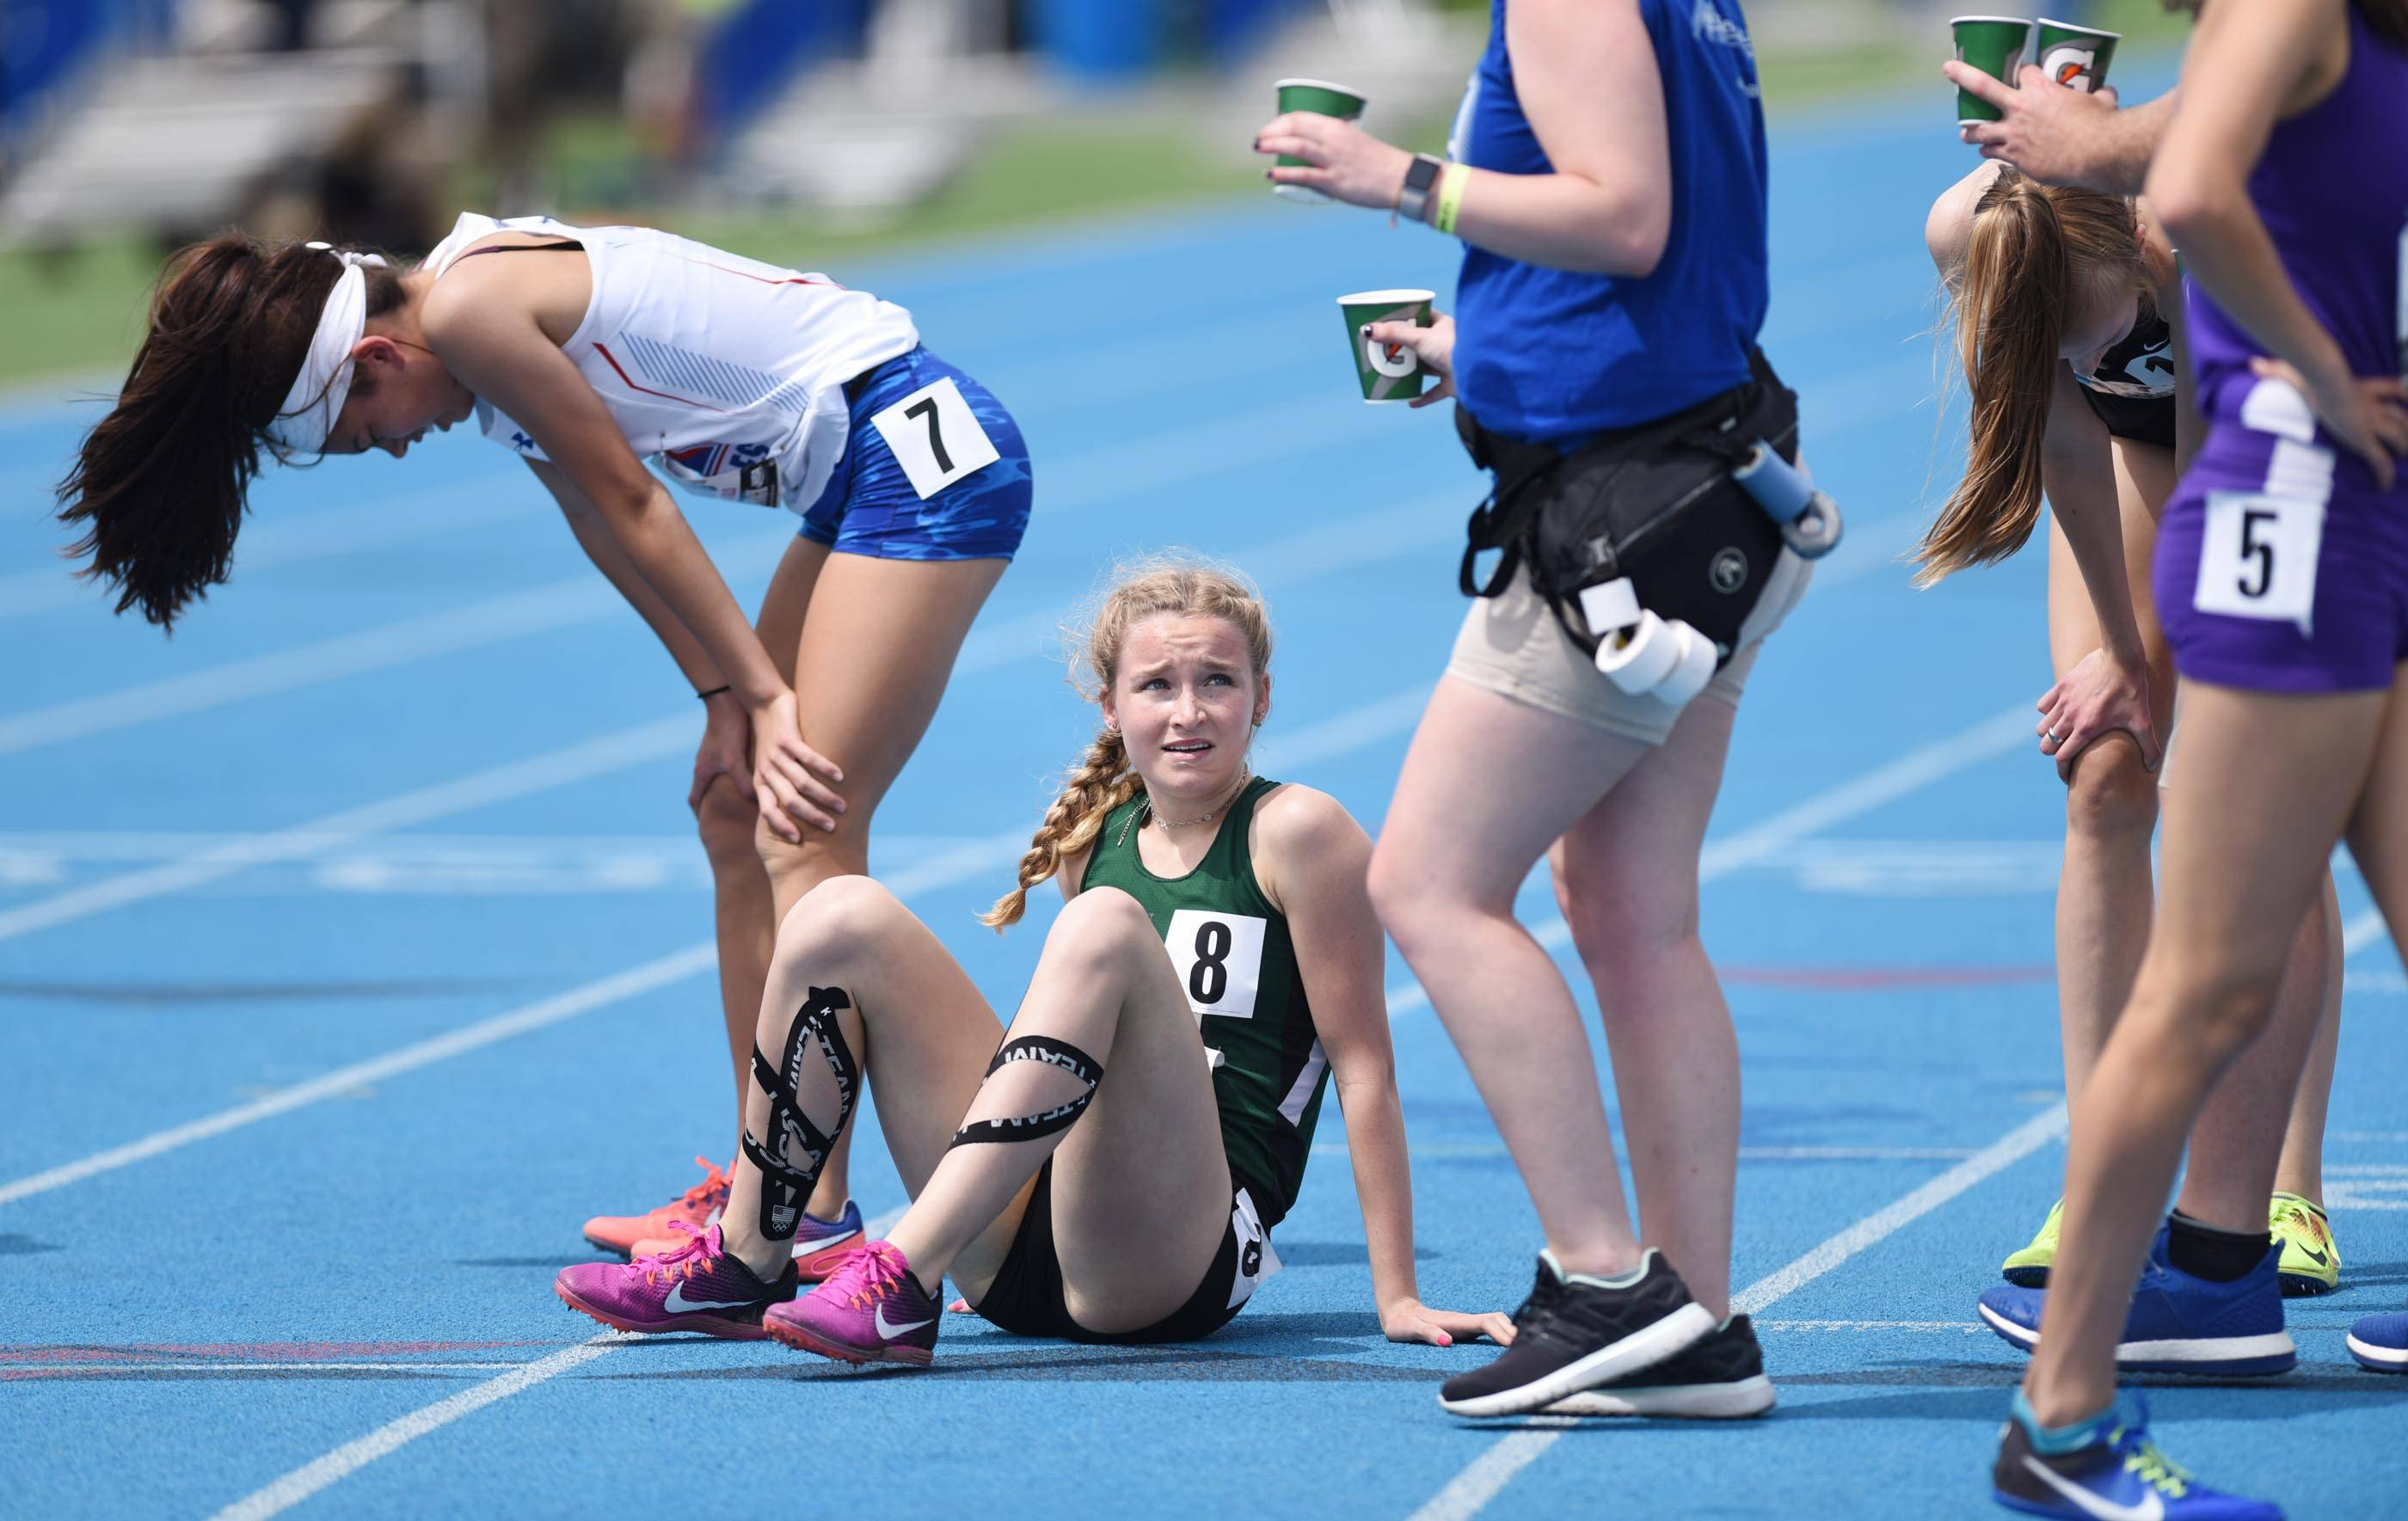 Glenbard West's Janie Nabholz reacts at the finish of the Class 3A 800-Meter Run at the state girls track and field meet finals on Saturday at Eastern Illinois University in Charleston.